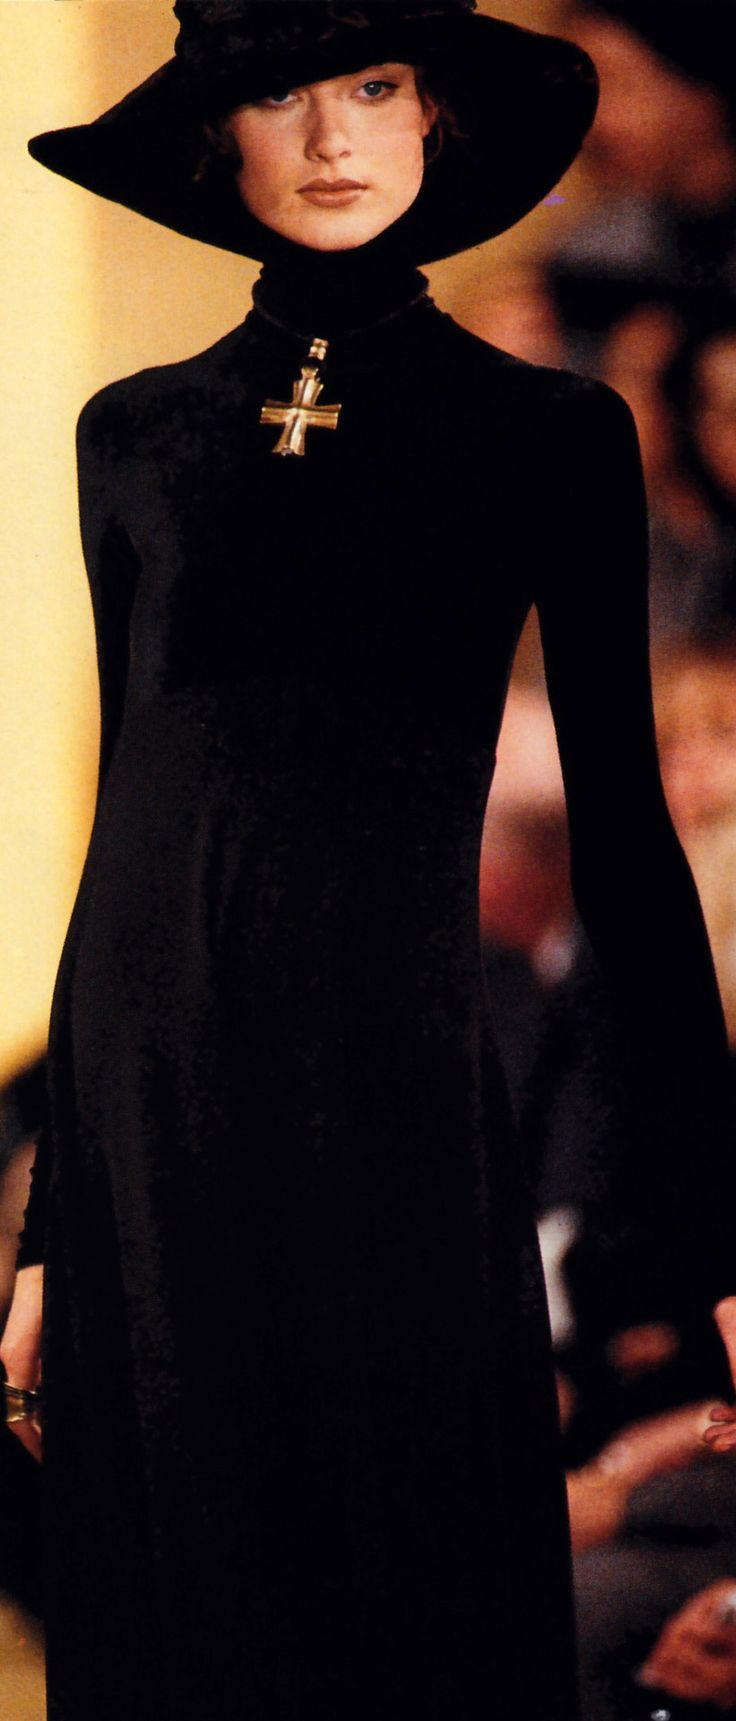 Donna Karan runway, Holt Renfrew Point of View, Fall 1993.